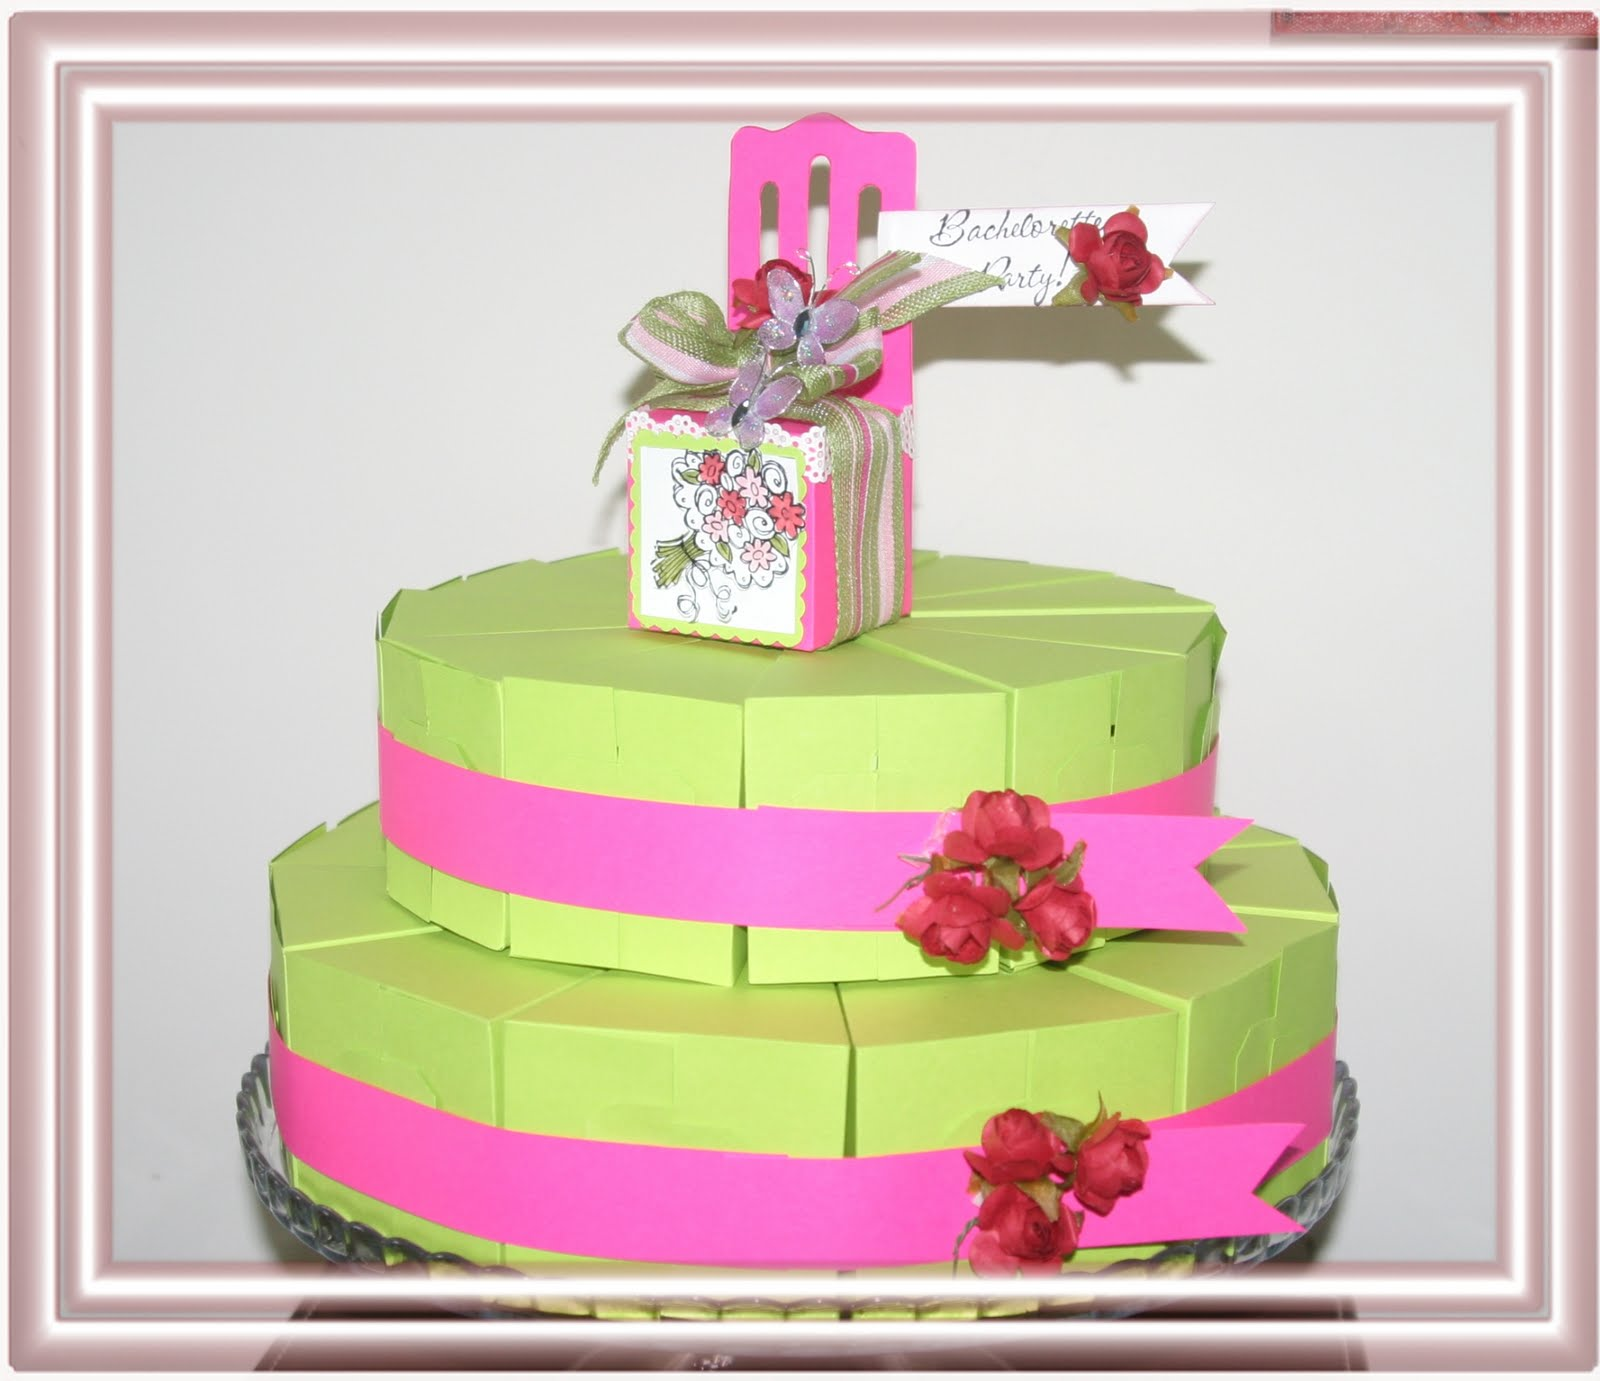 images of chairs and cake box4 jpg wallpaper